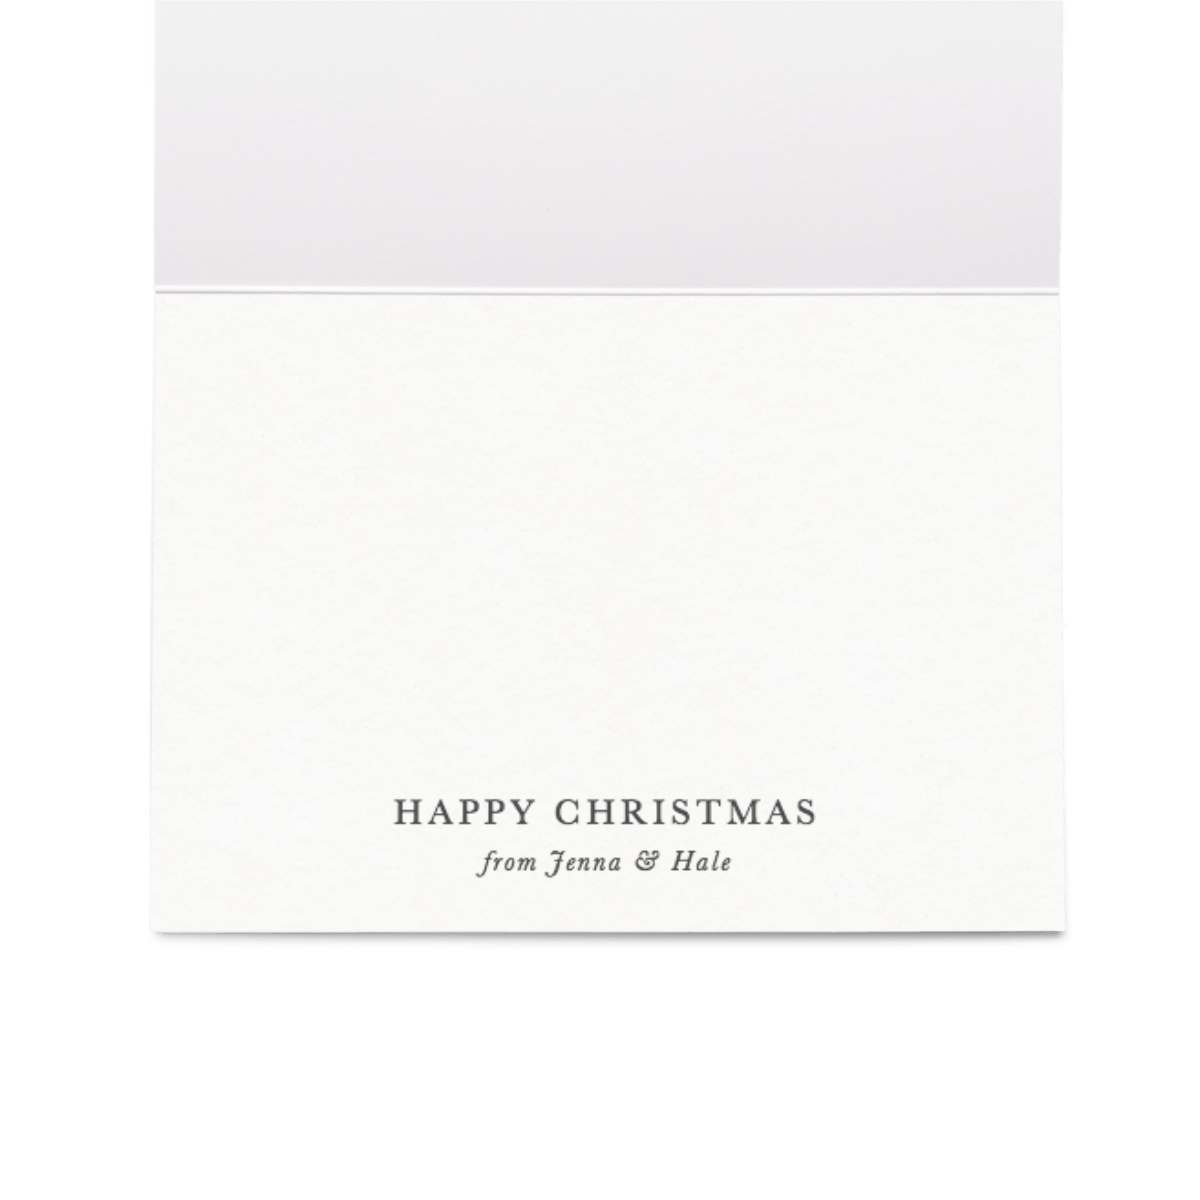 Https%3a%2f%2fwww.papier.com%2fproduct image%2f27627%2f20%2fhome for the holidays 6889 interieur 1542209658.png?ixlib=rb 1.1